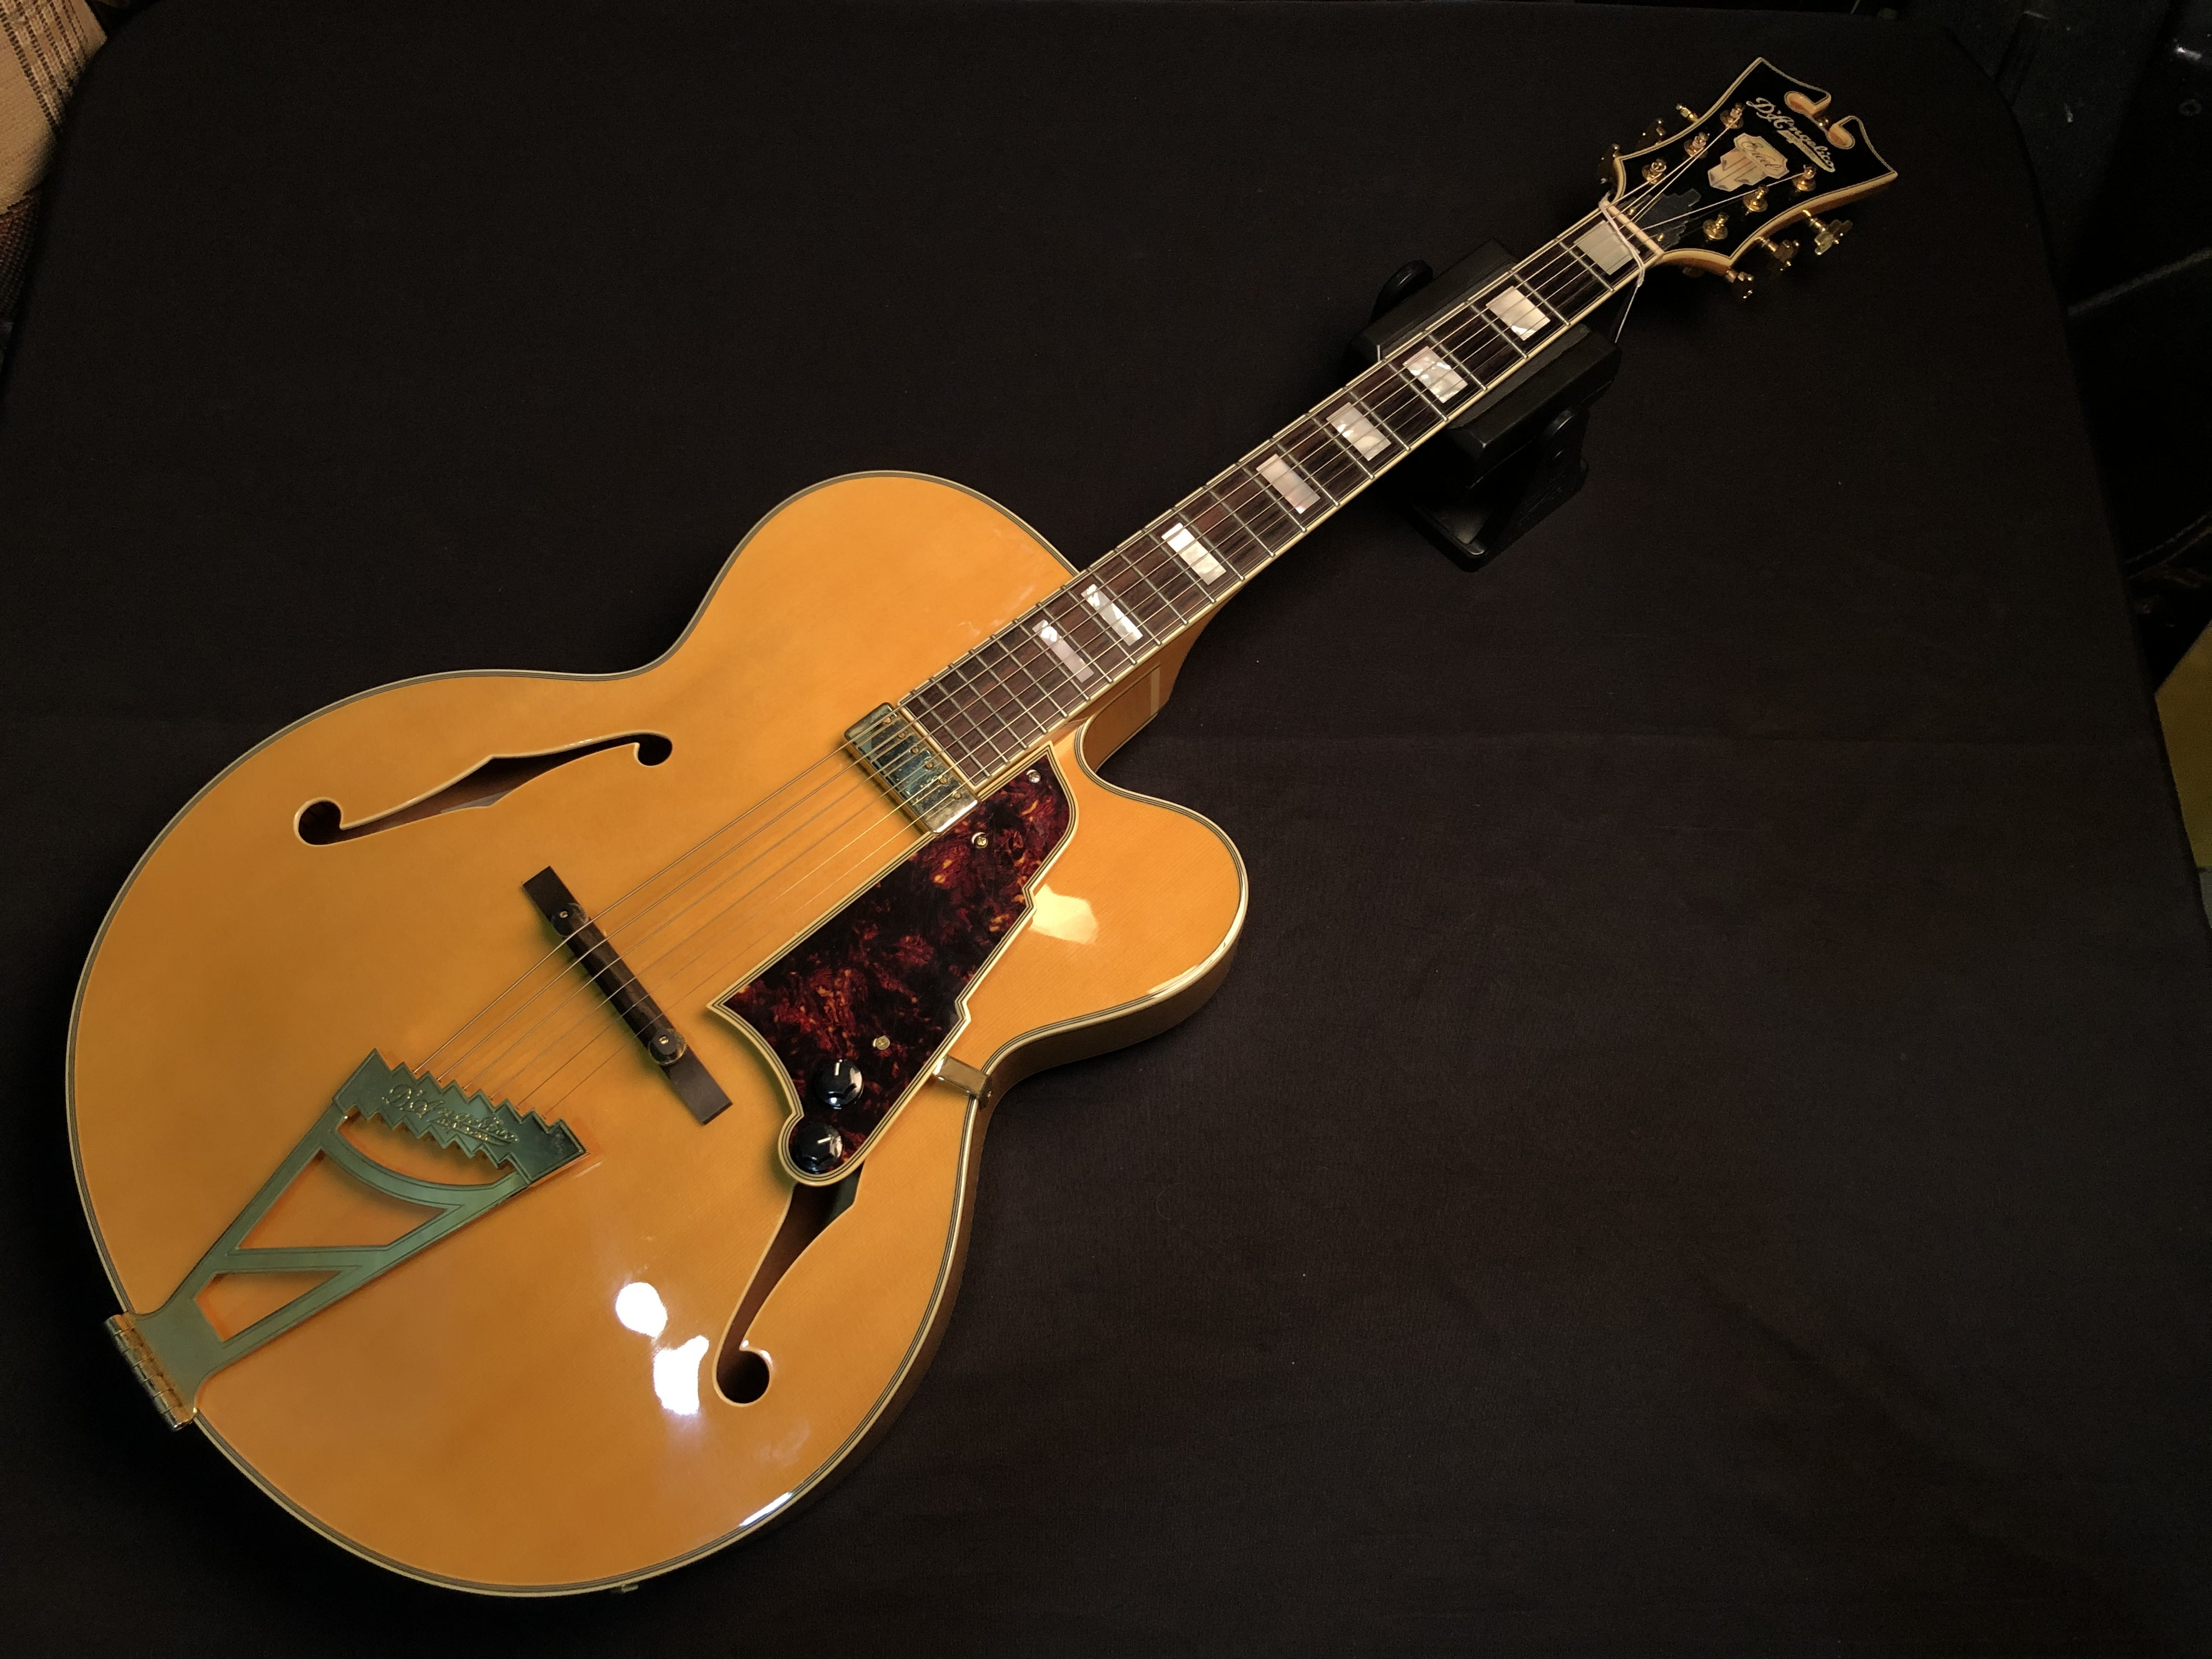 D'ANGELICO - ELX-1 - ARCHTOP ELECTRIC GUITAR